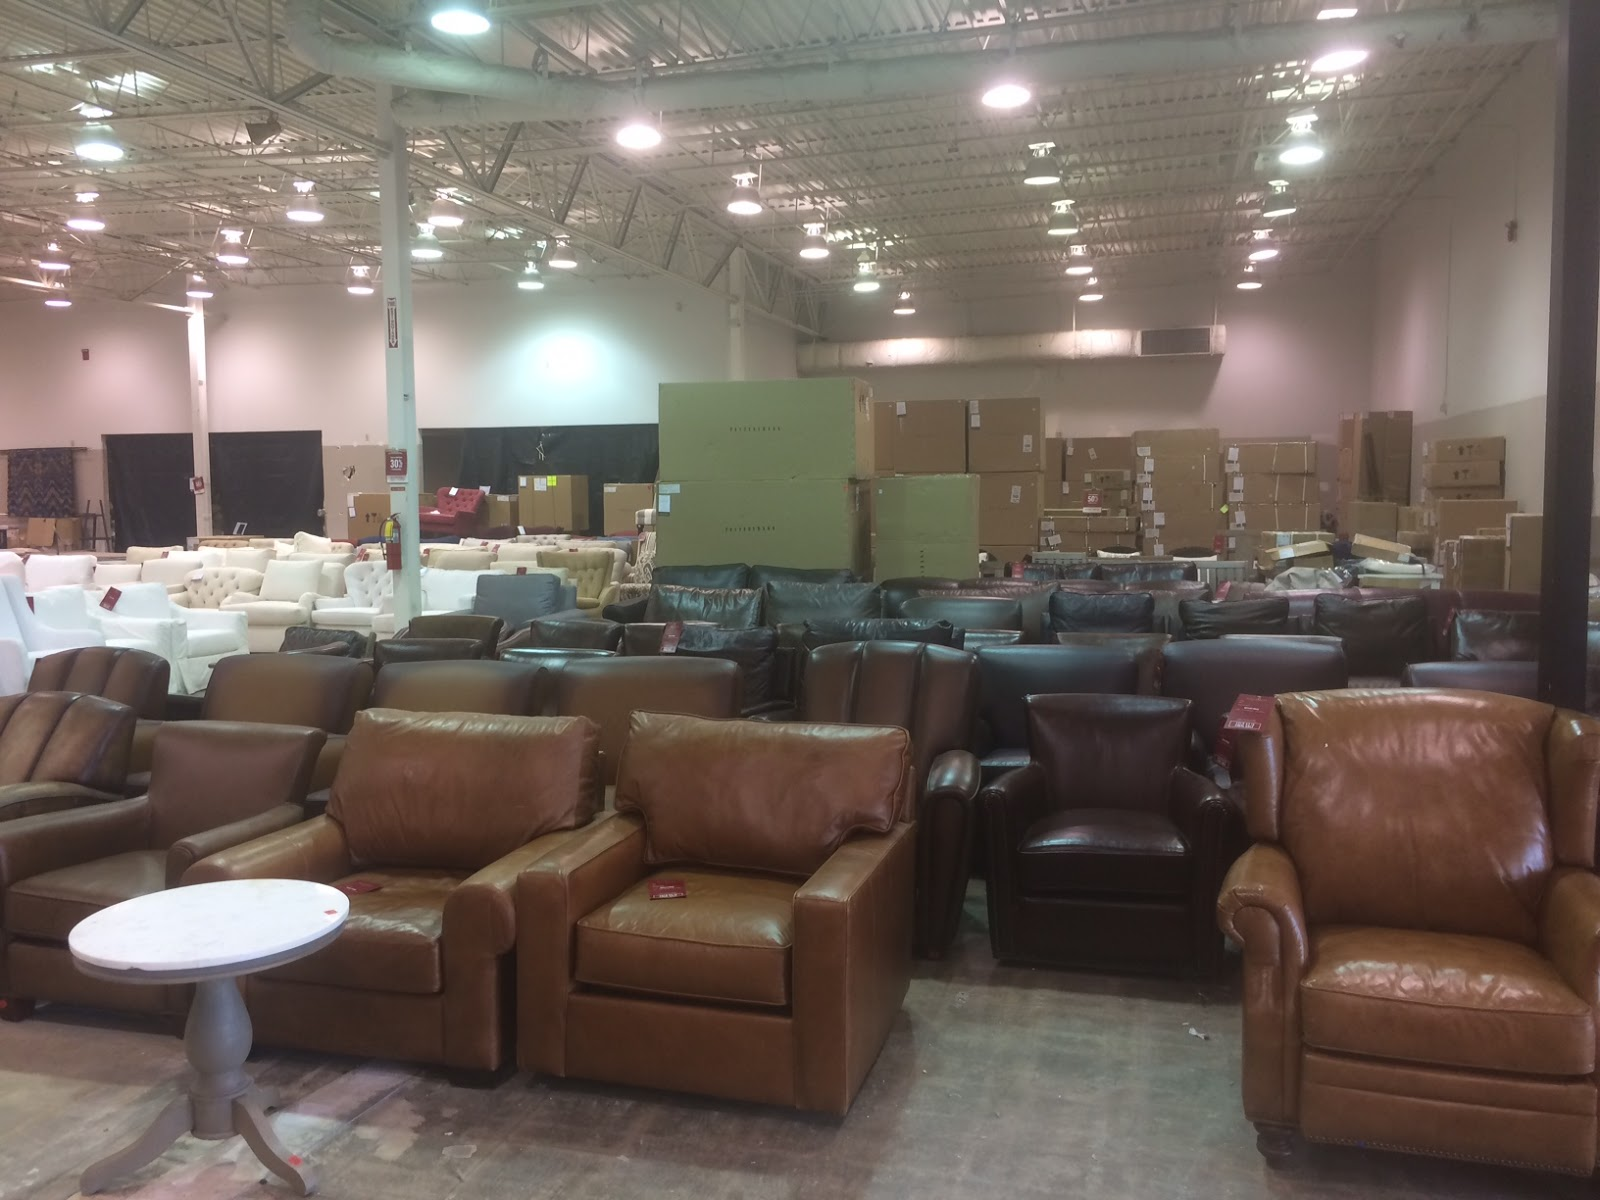 Tomorrow S News Today Atlanta Update Pottery Barn Warehouse Sale Near Southlake Liquidating